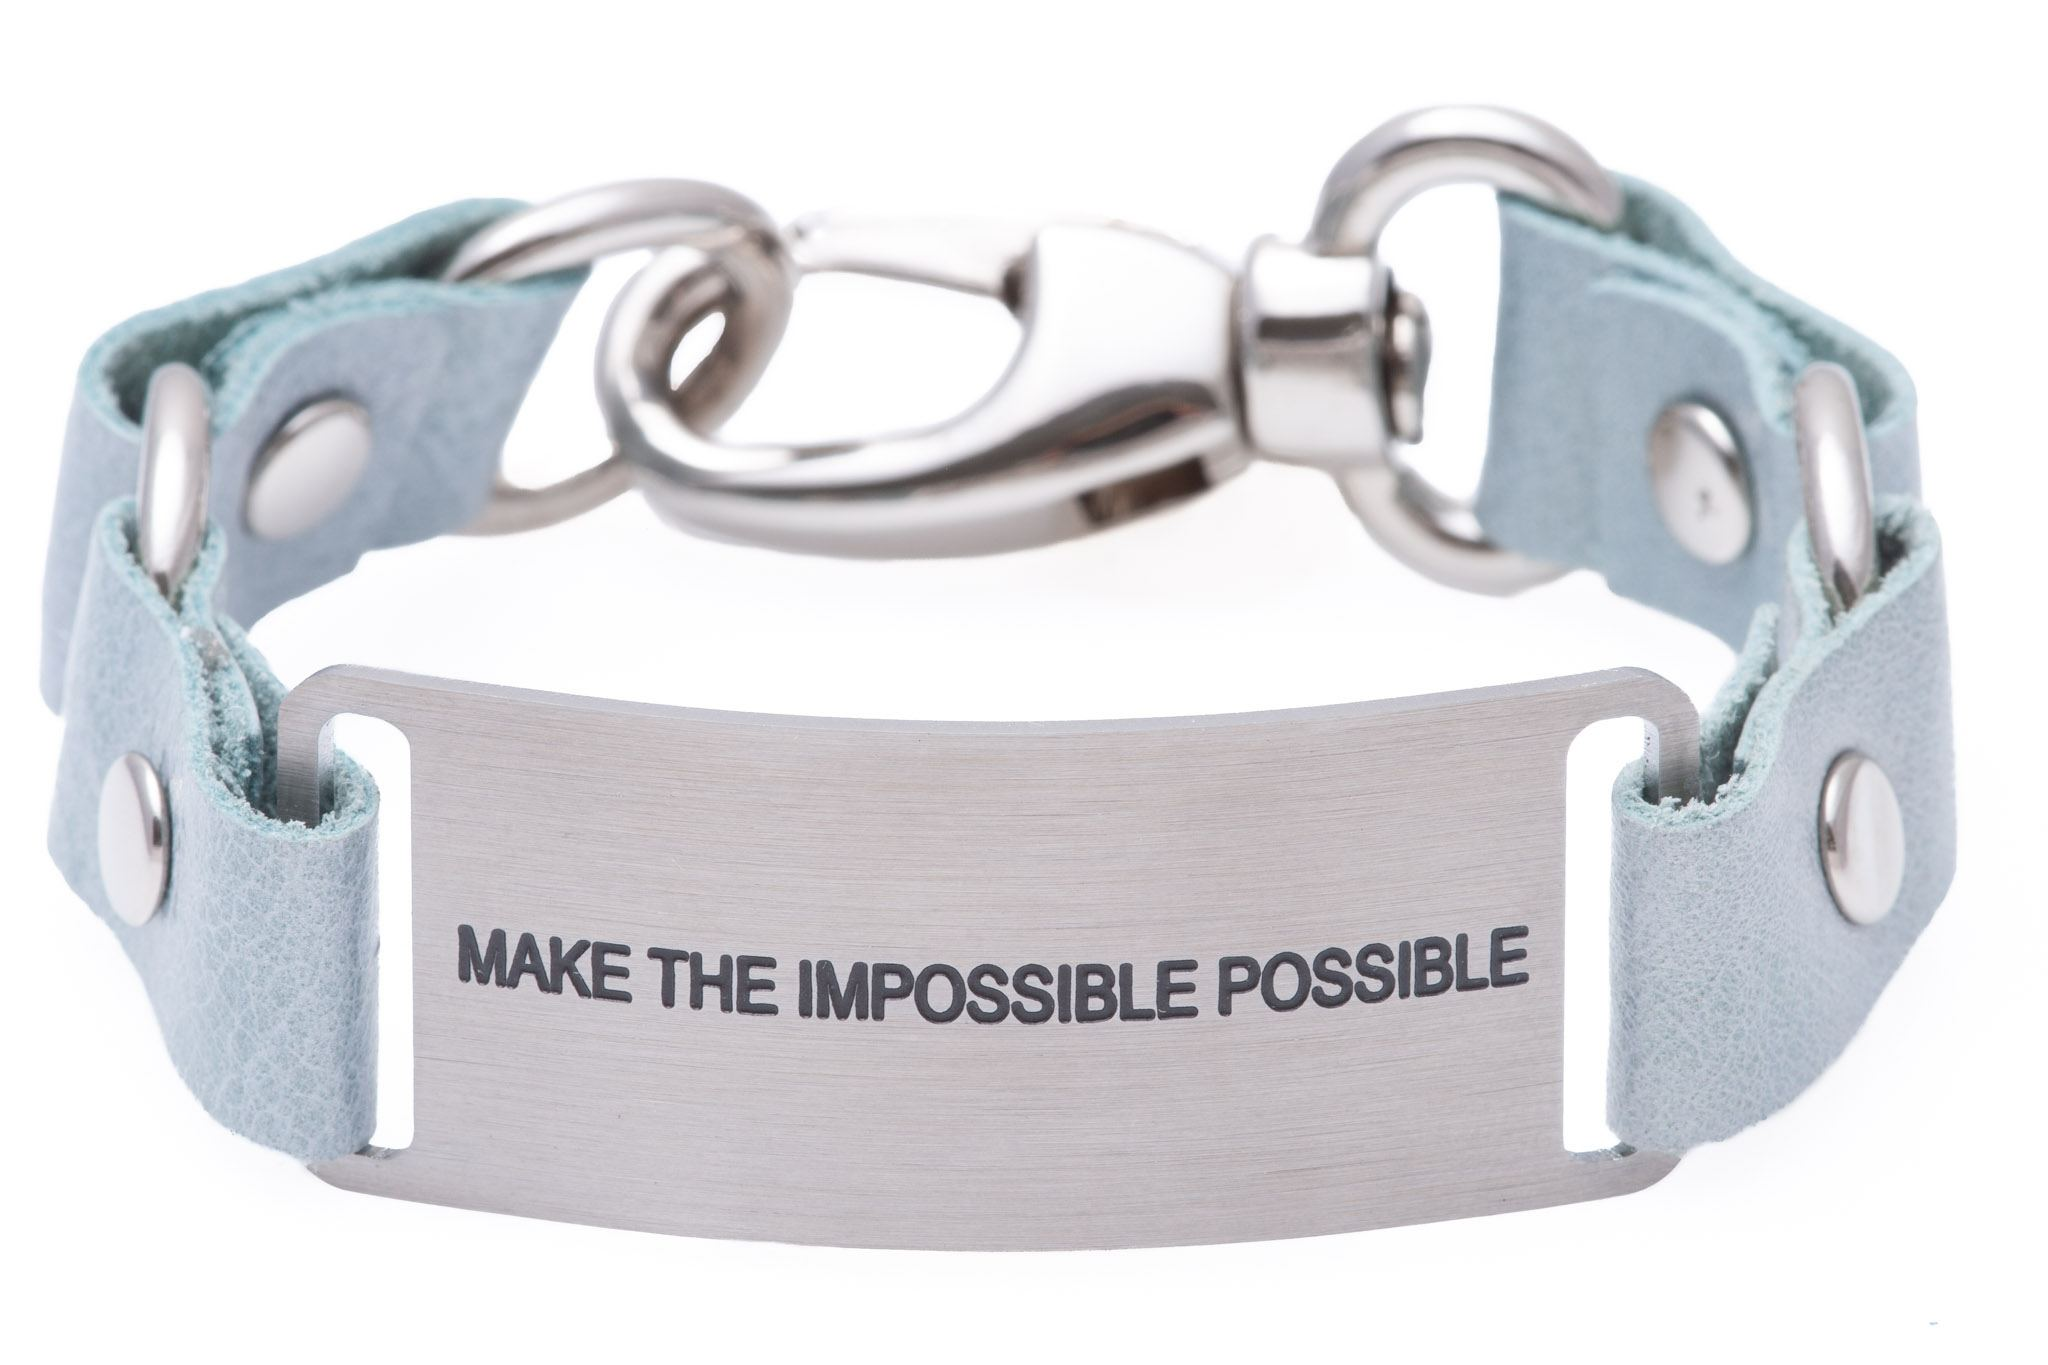 Load image into Gallery viewer, Message Bracelet Light Blue Leather Make The Impossible Possible